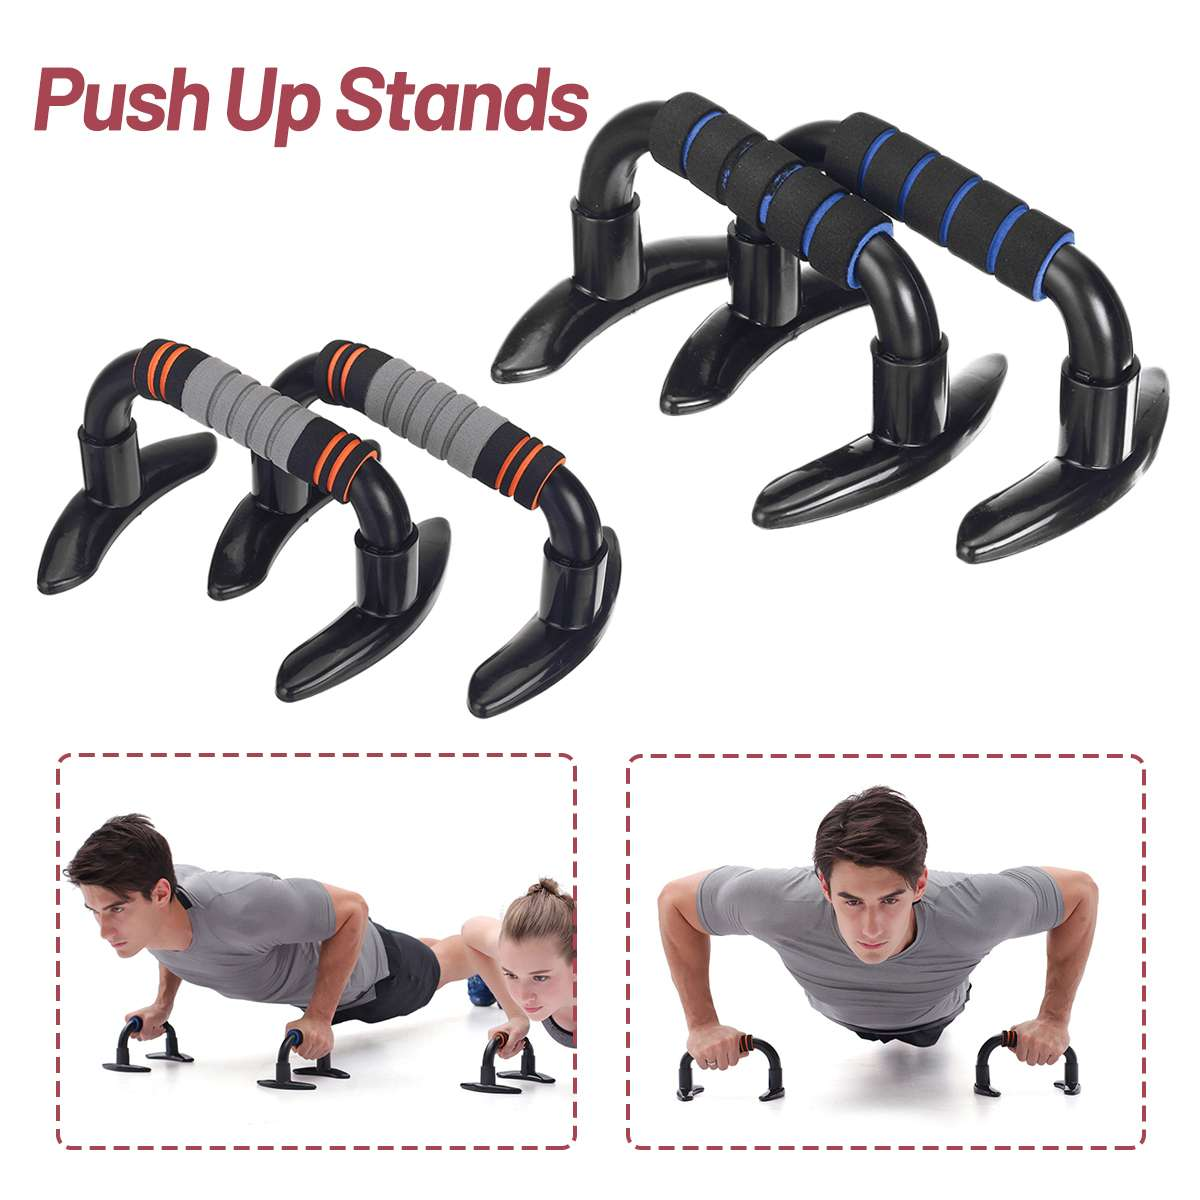 Home Gym Fitness <font><b>Push</b></font>-<font><b>Ups</b></font> Board Stands for Body Building Chest Muscles <font><b>Push</b></font>-<font><b>Ups</b></font> Stands Exercise Training <font><b>Sport</b></font> Equipment image